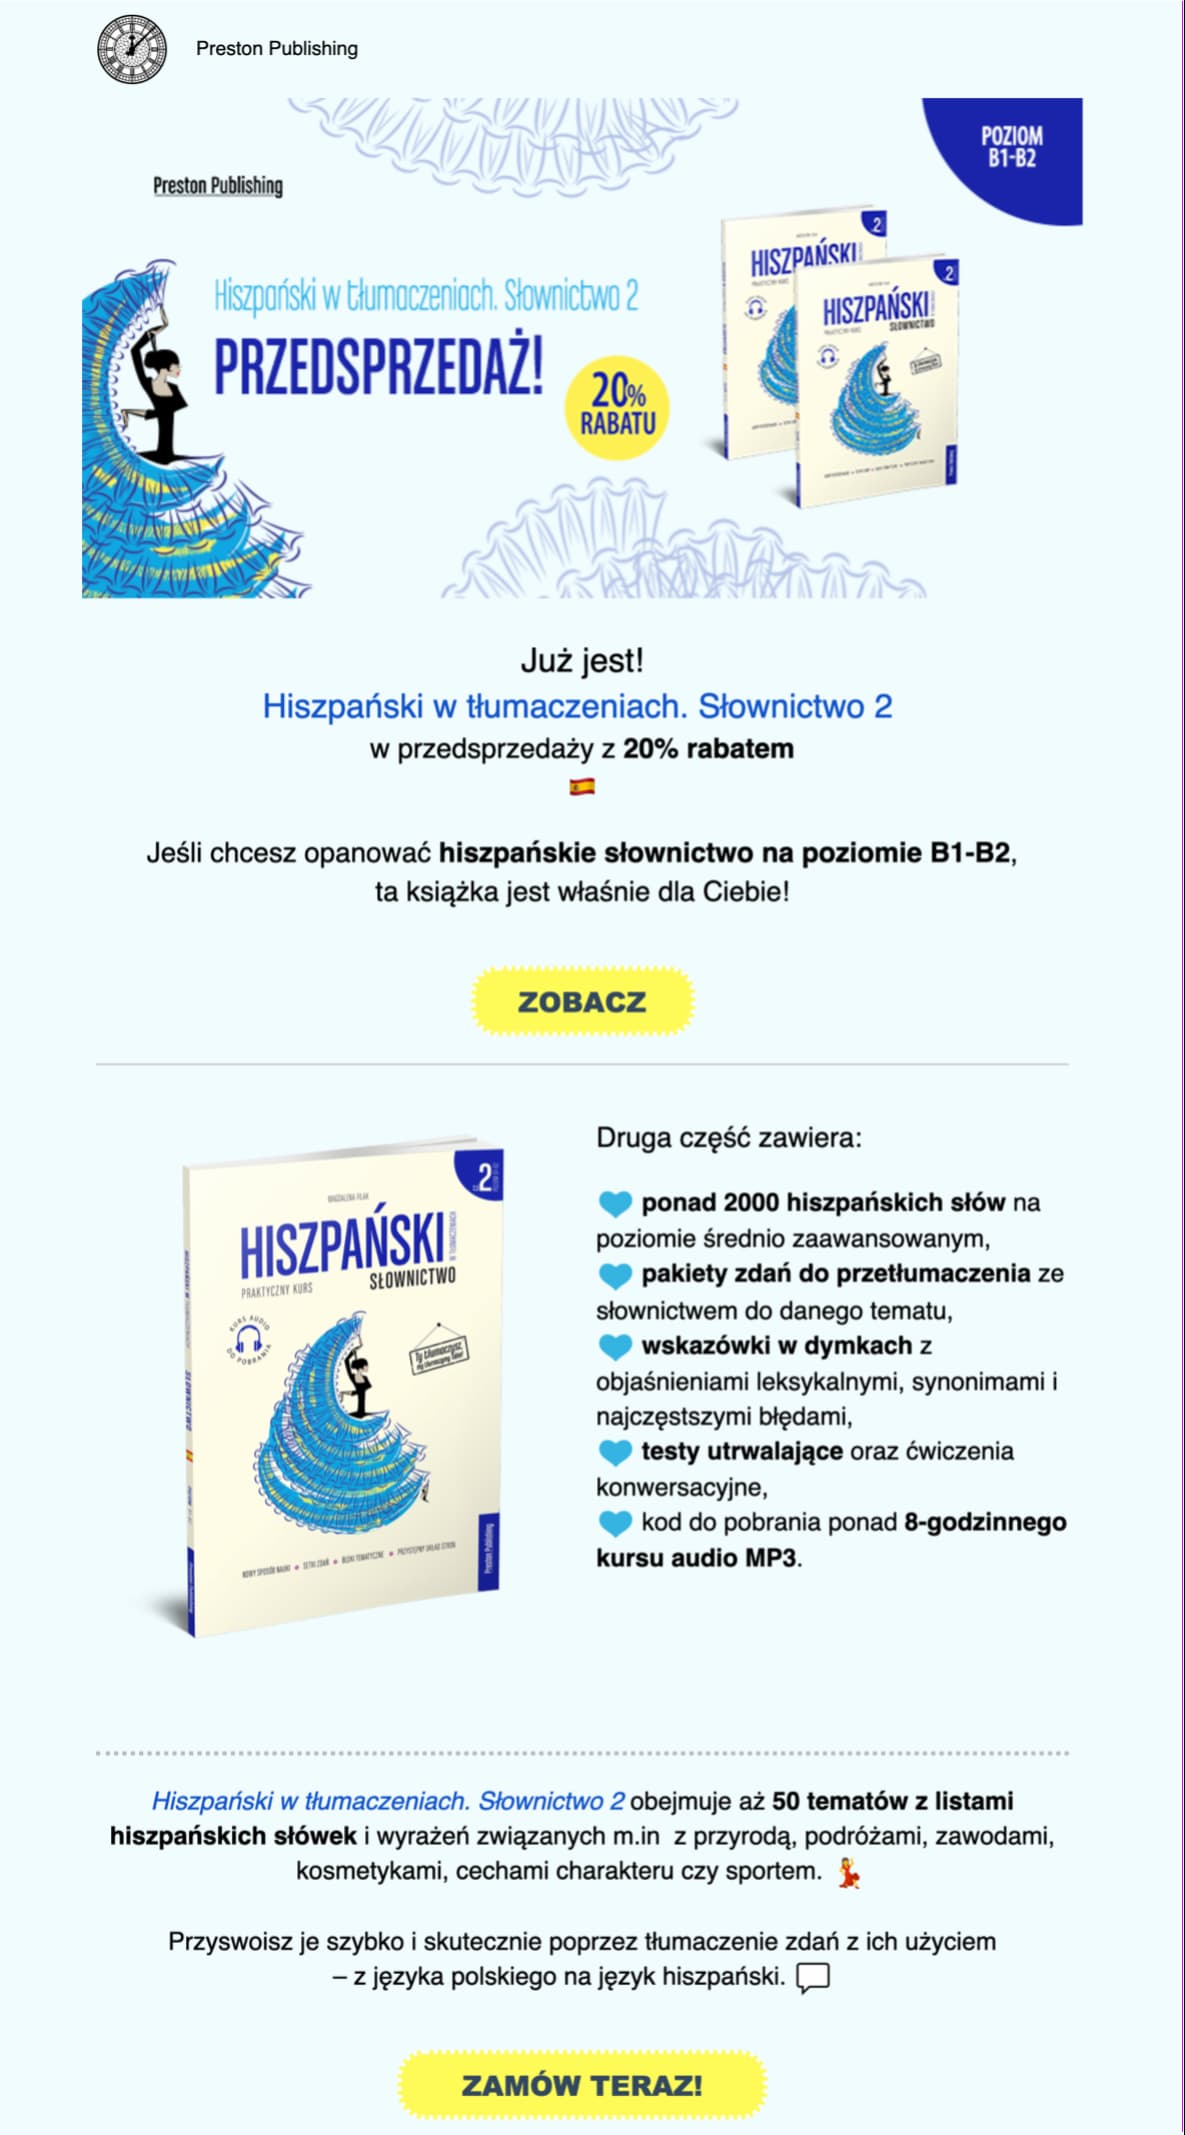 An email promoting the second volume of a Spanish vocabulary coursebook.